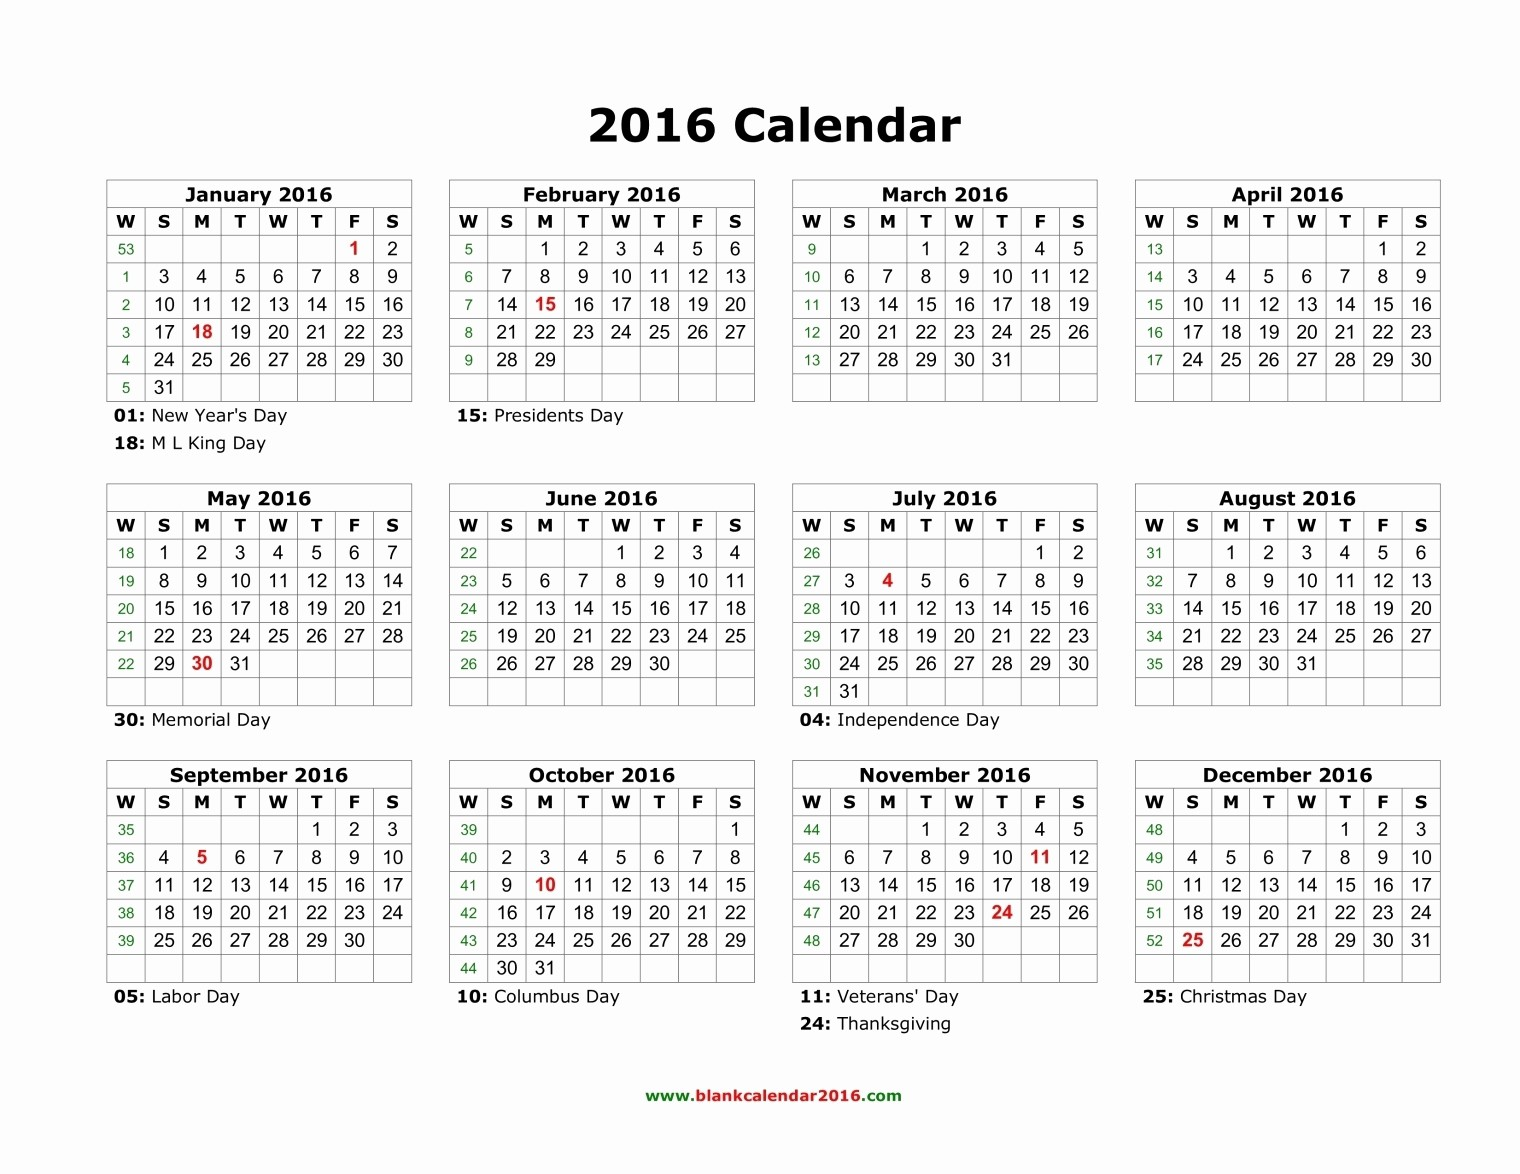 Calendar 2016 Printable with Holidays Unique 2016 Yearly Calendar with Holidays Printable